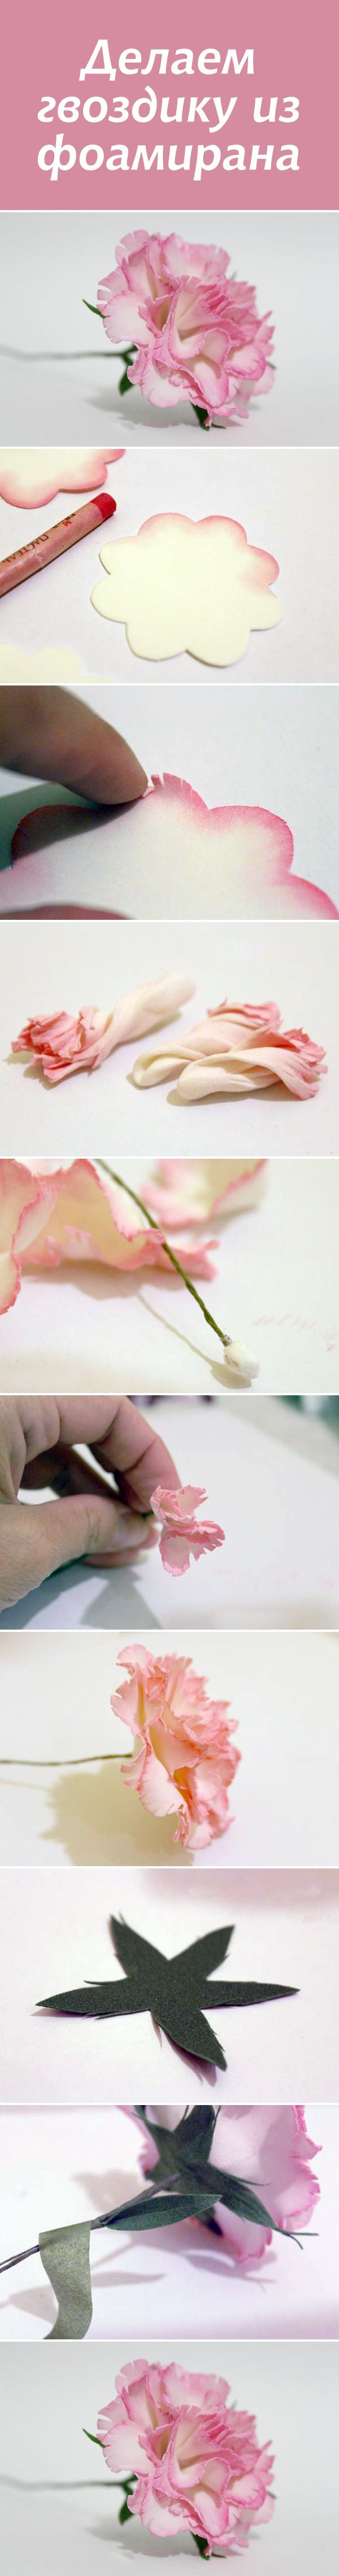 Делаем гвоздику из фоамирана #diy #tutorial #fom